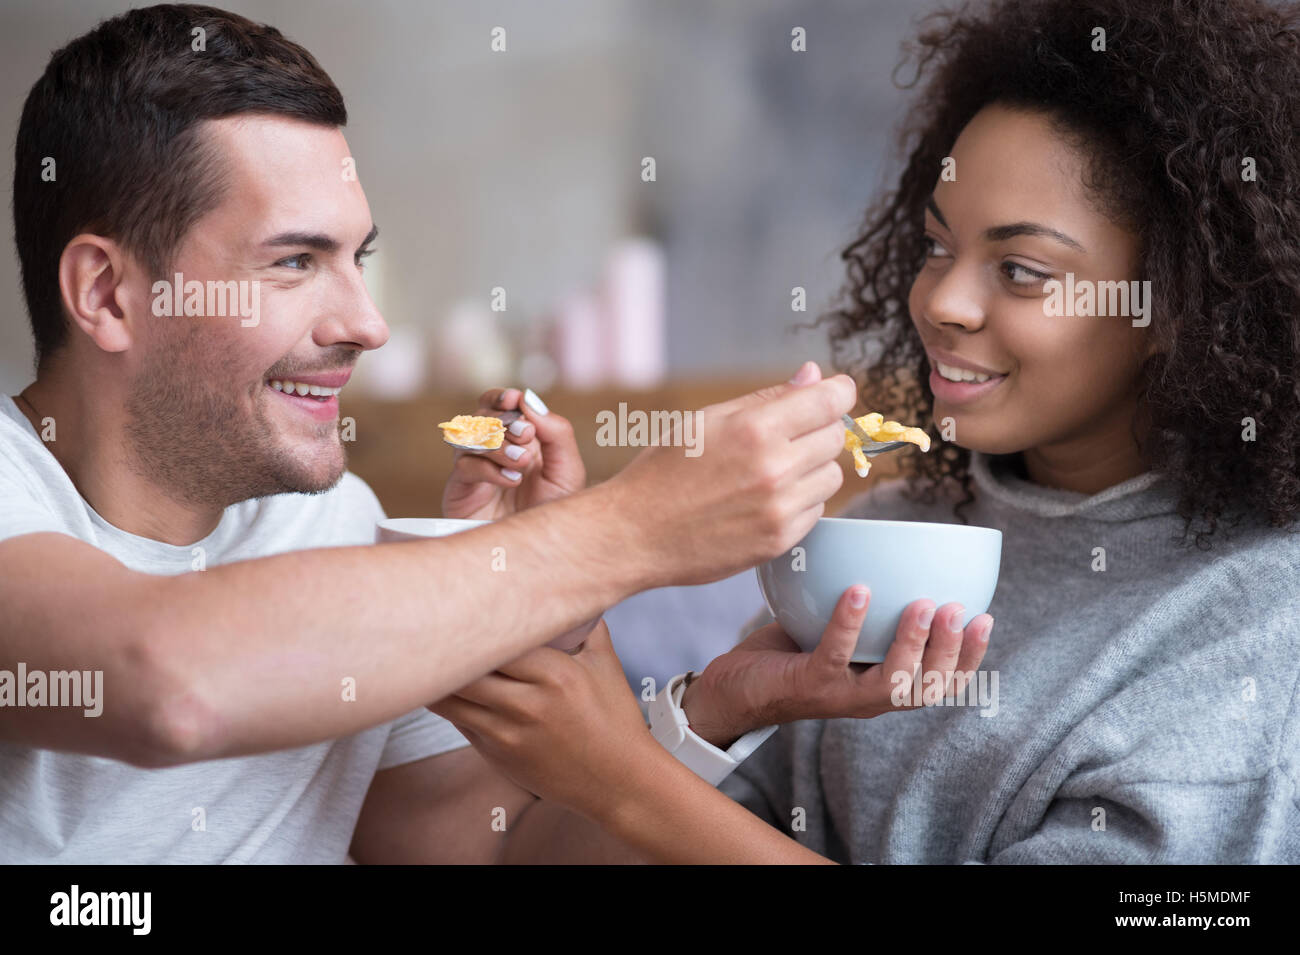 Young couple feeding each other with cereals tenderly - Stock Image